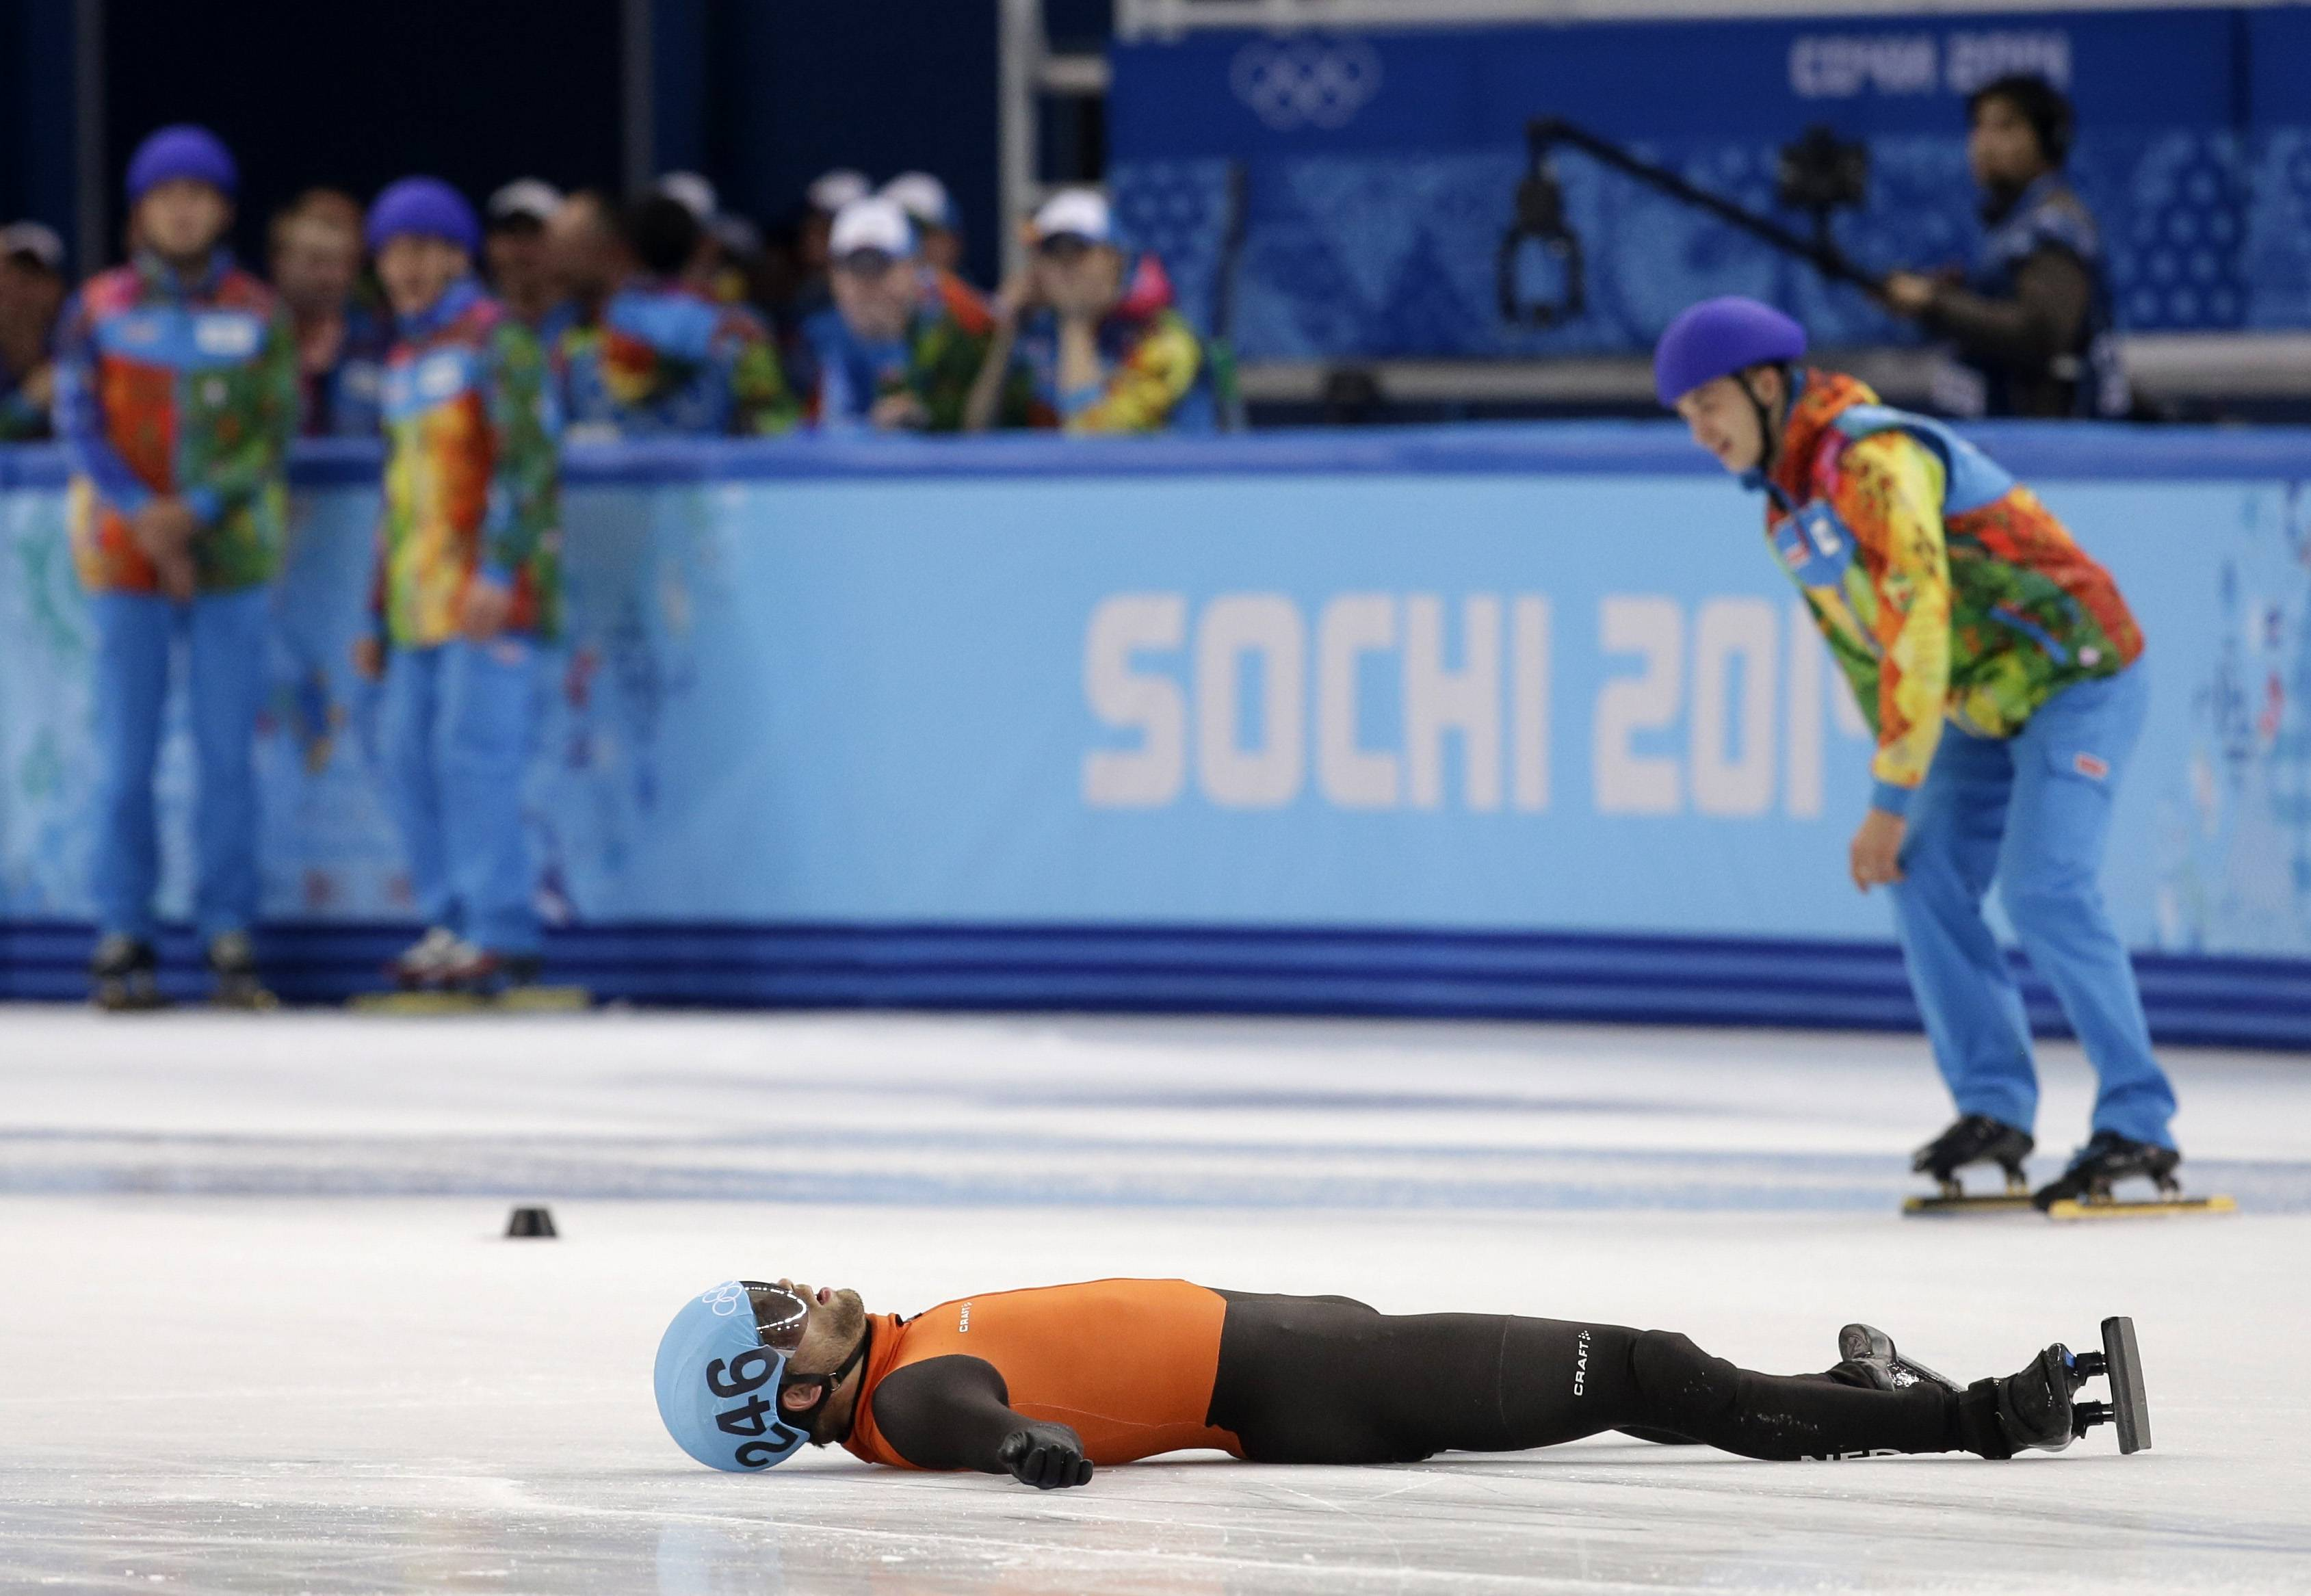 Daan Breewsma of the Netherlands lies on the ice after competing in the men's 5000m short track speedskating relay final.